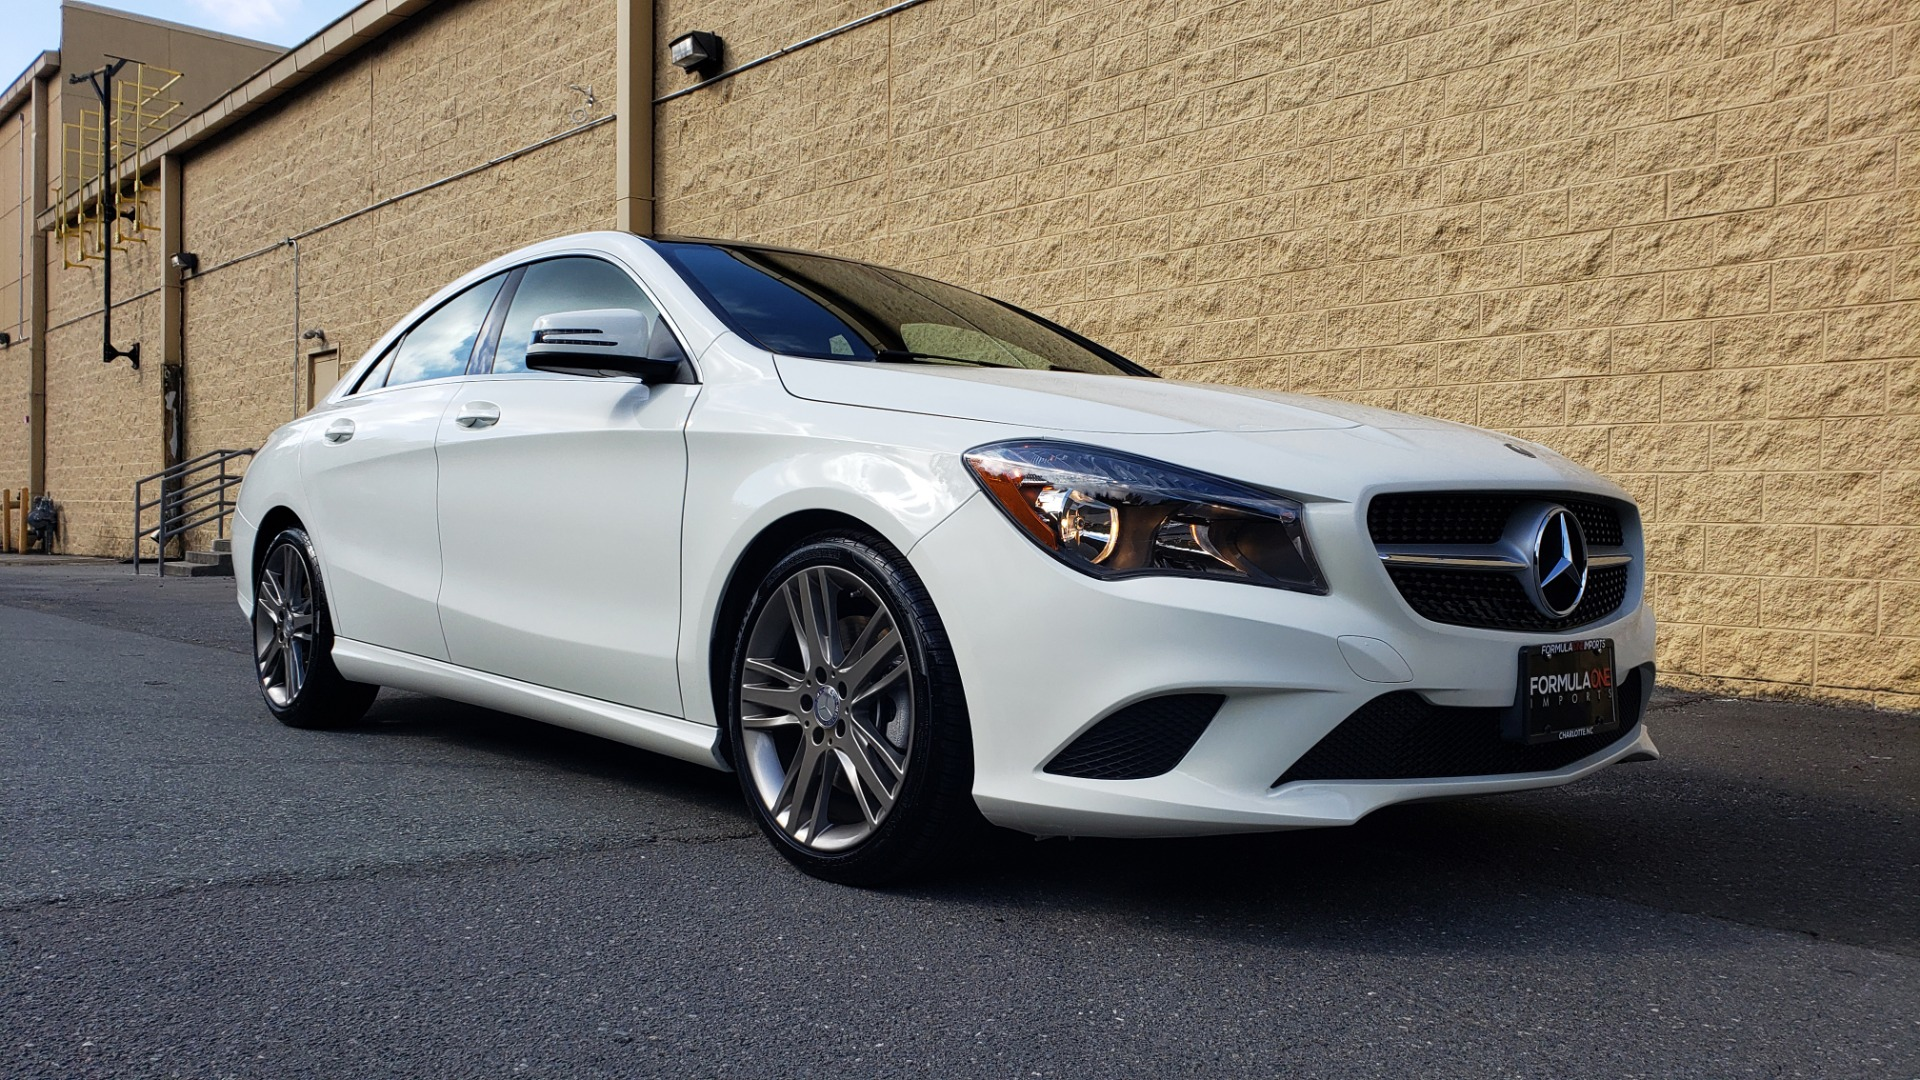 Used 2015 Mercedes-Benz CLA-Class CLA250 / FWD / SUNROOF / SPORT SUSP / CAMERA for sale Sold at Formula Imports in Charlotte NC 28227 4